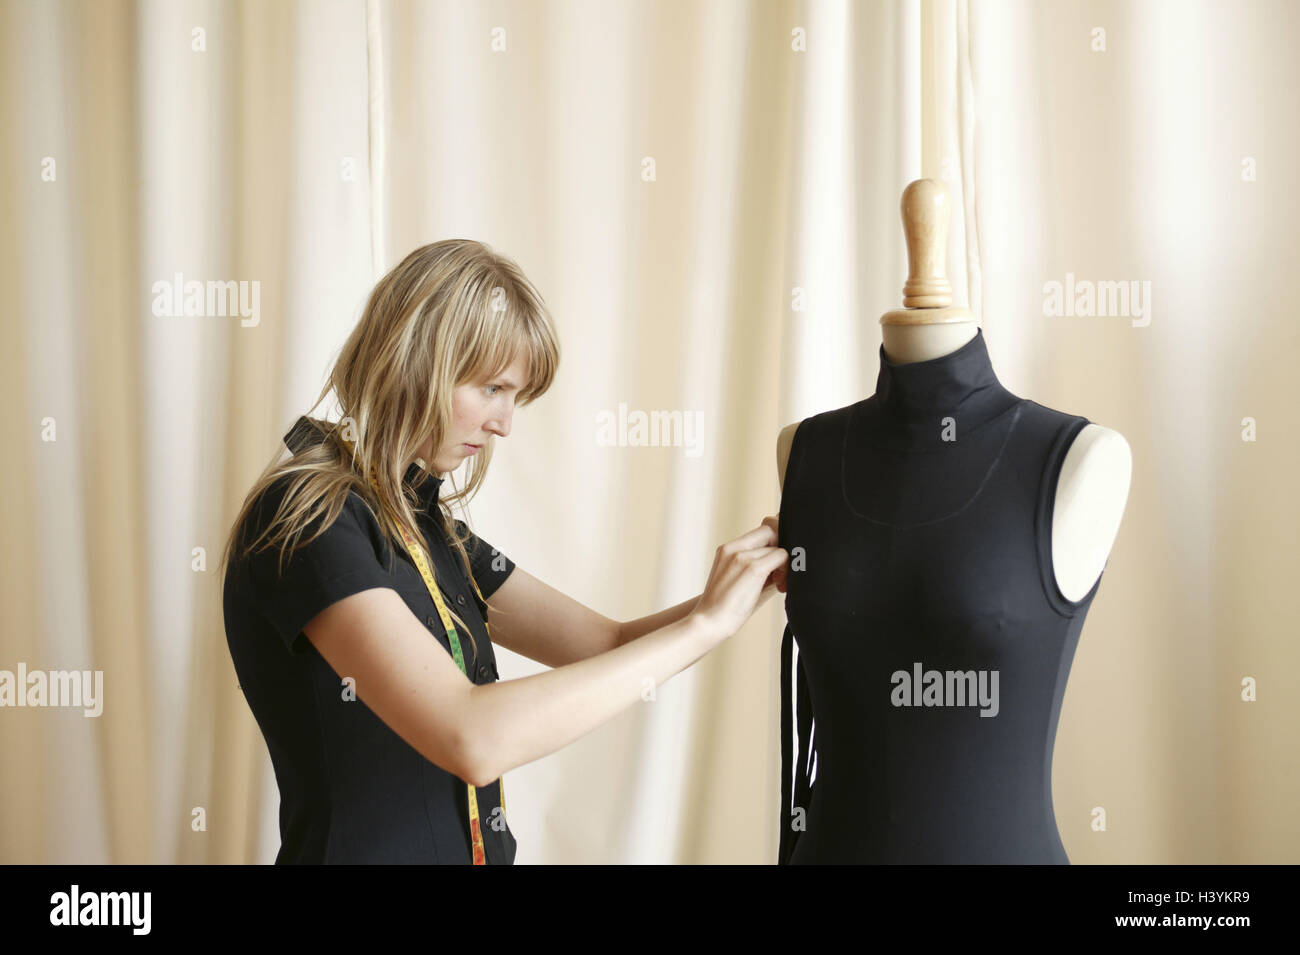 Woman Young Tape Measure Dummy Upper Top Mark Out Stock Photo Alamy